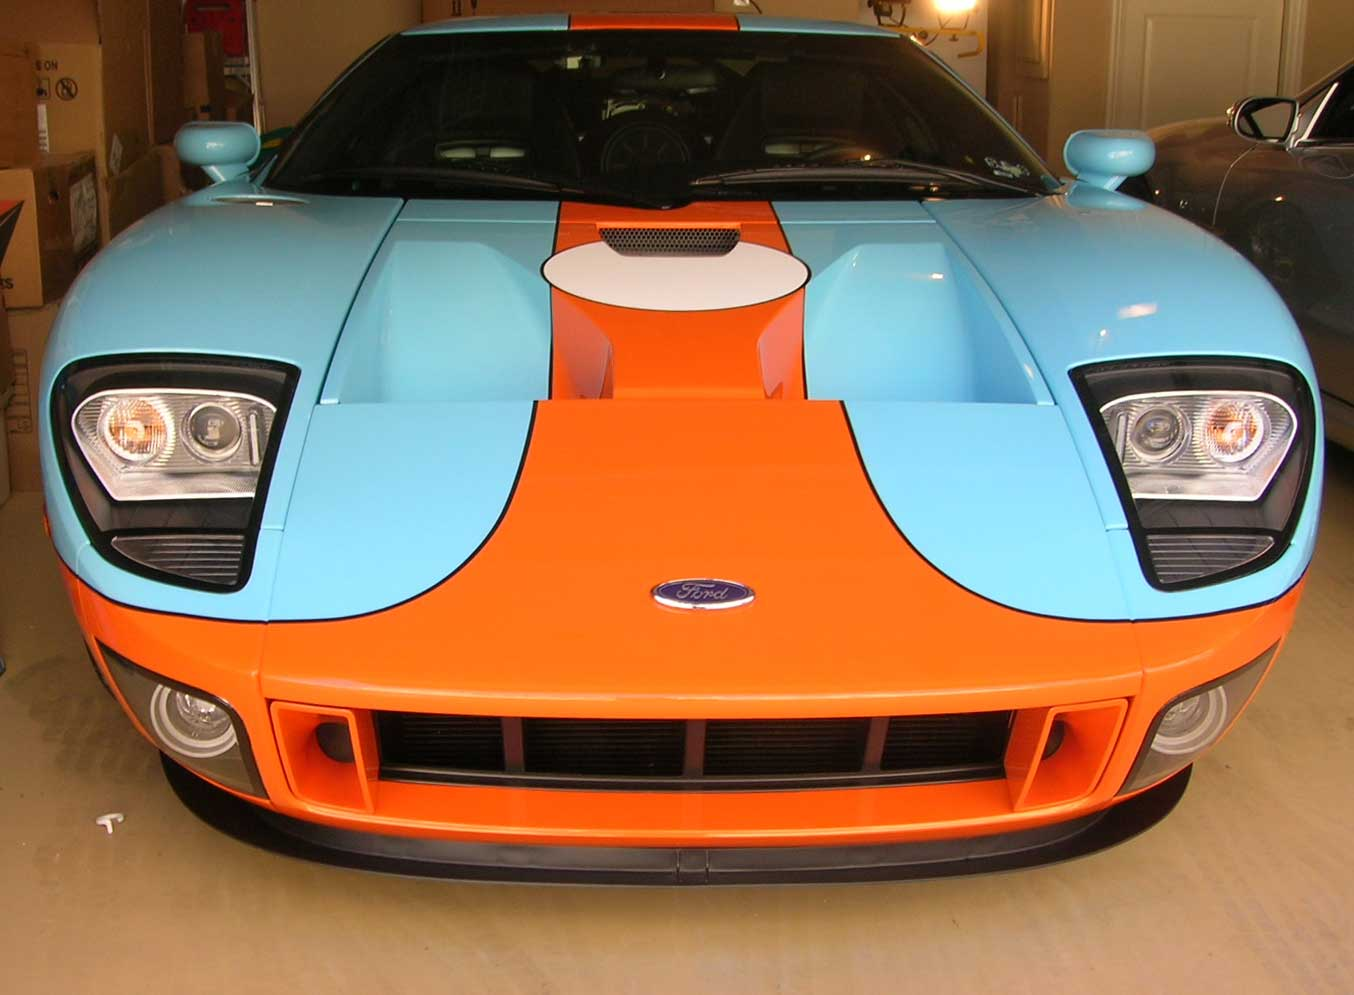 This Very rare Ford GT in Gulf